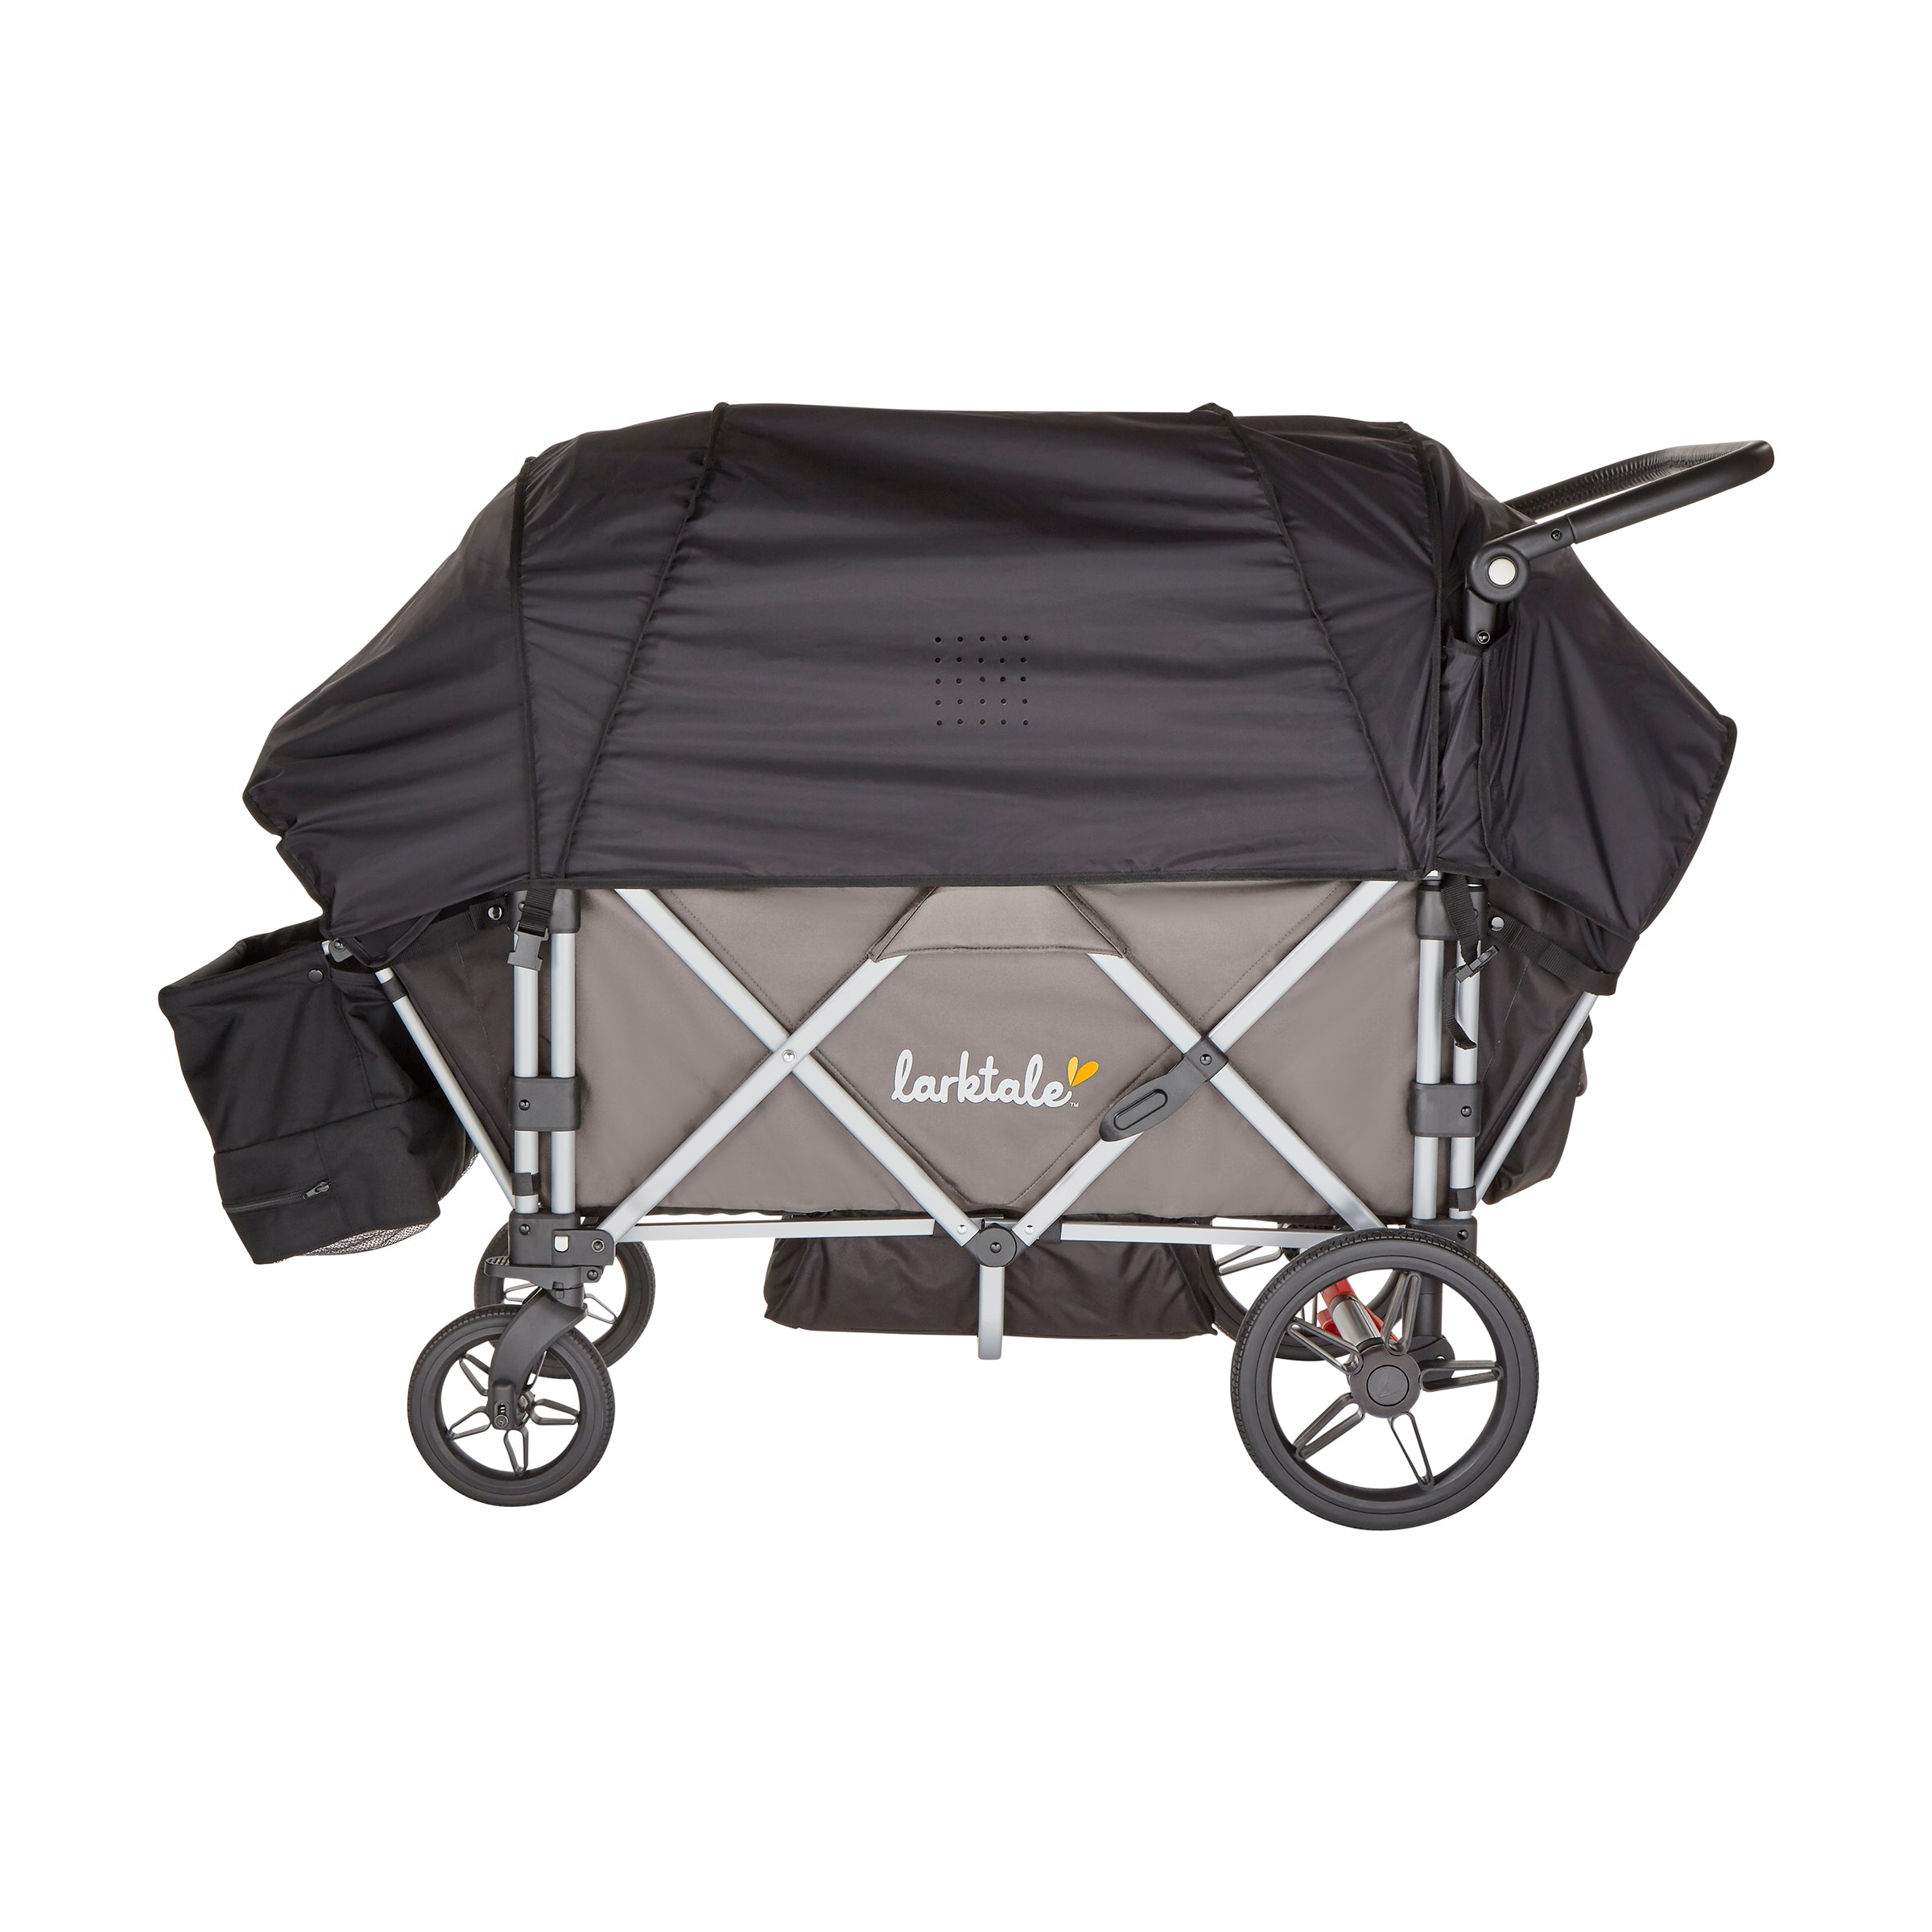 Caravan stroller/wagon sun canopy set - built-in rain cover